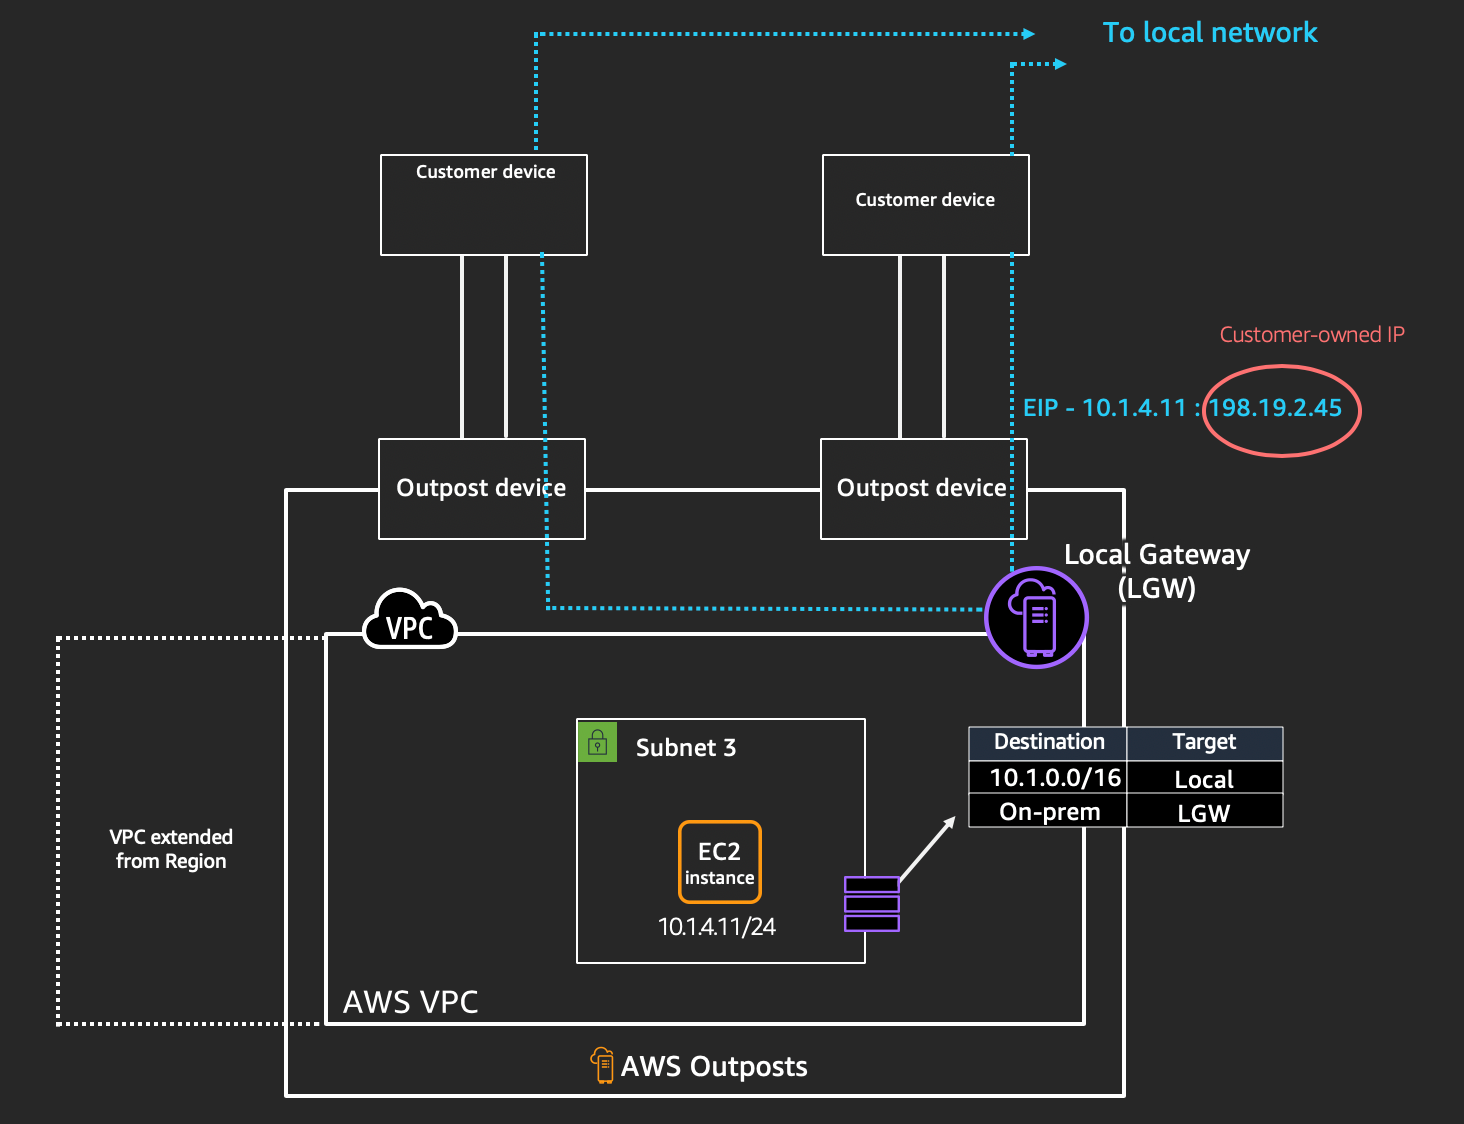 This diagram depicts how AWS Outposts connects to your on-premises network, traversing instances a local gateway or through the COIP